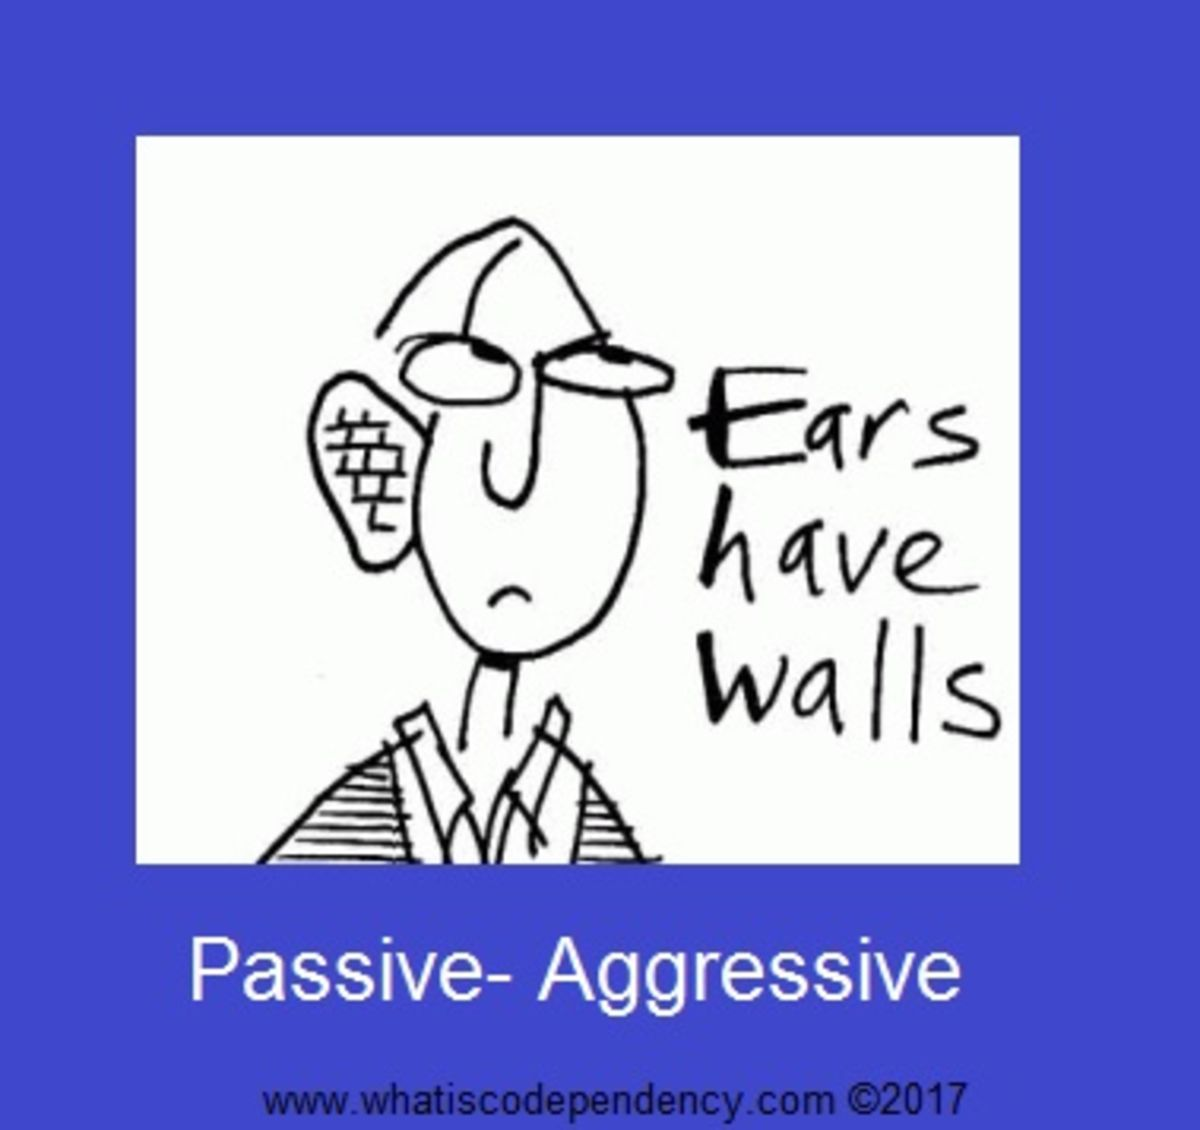 How to deal with passive aggressive husband during divorce